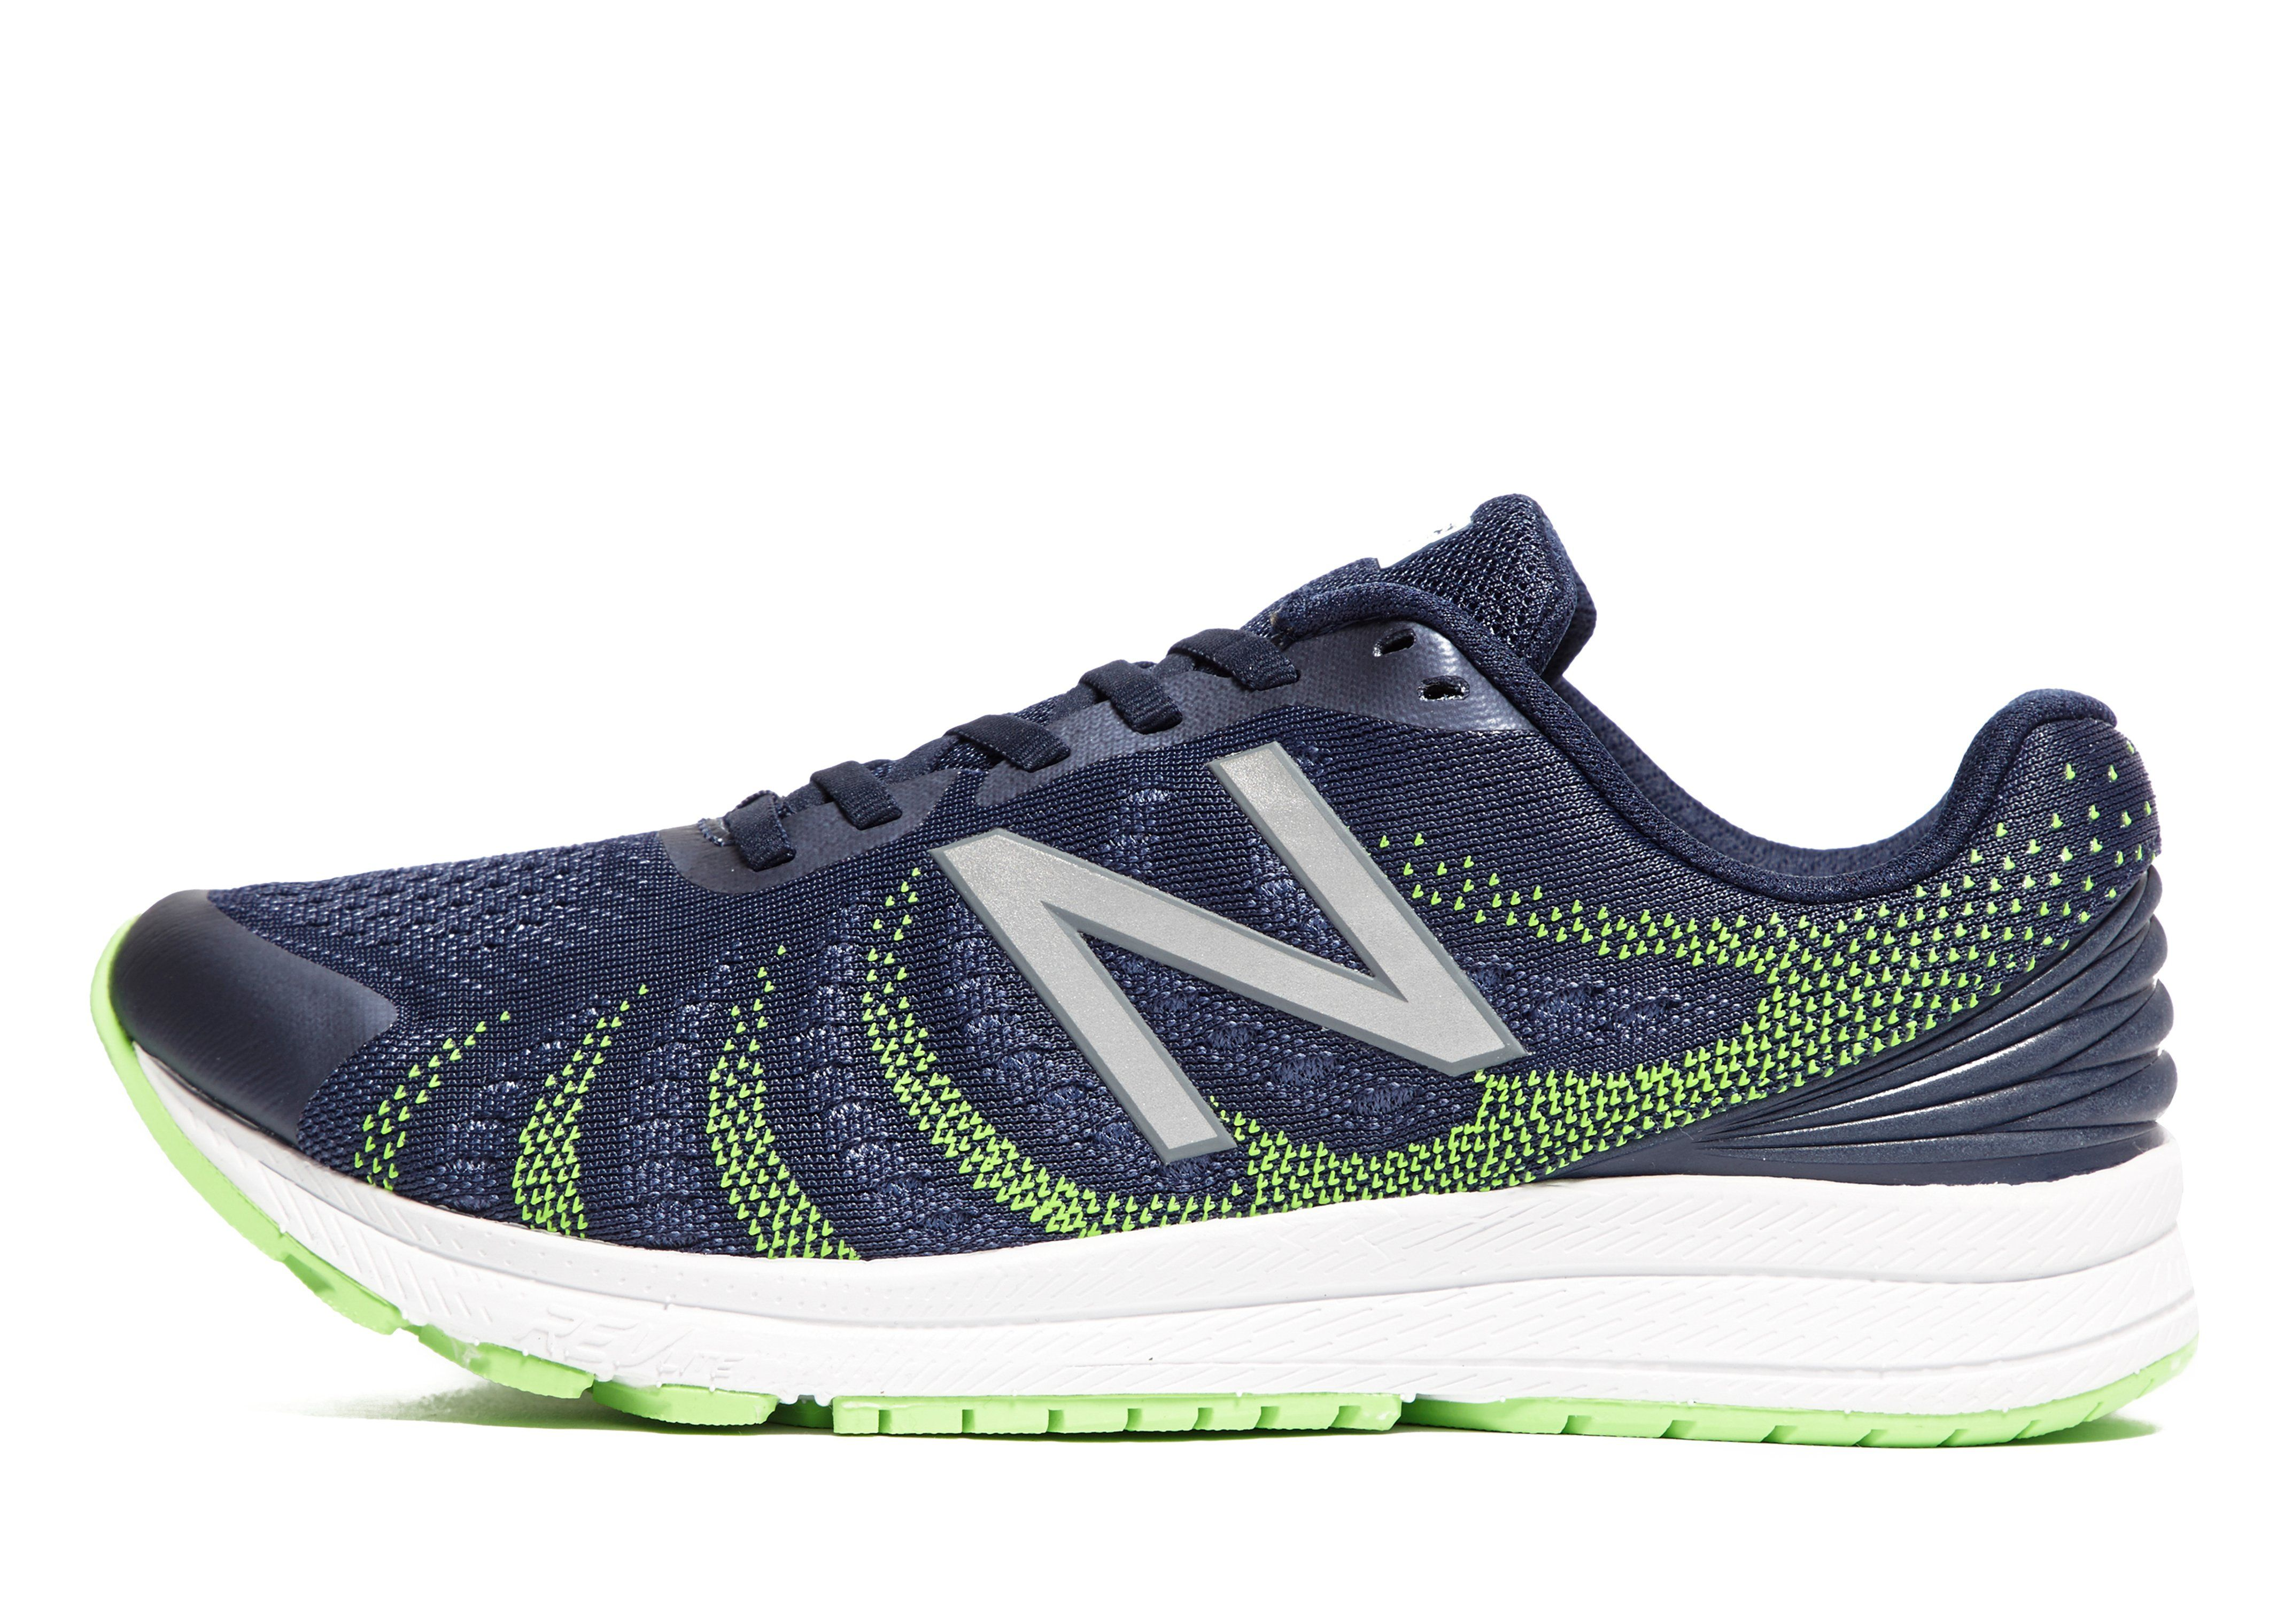 new balance fuelcore v3 s running shoes jd sports